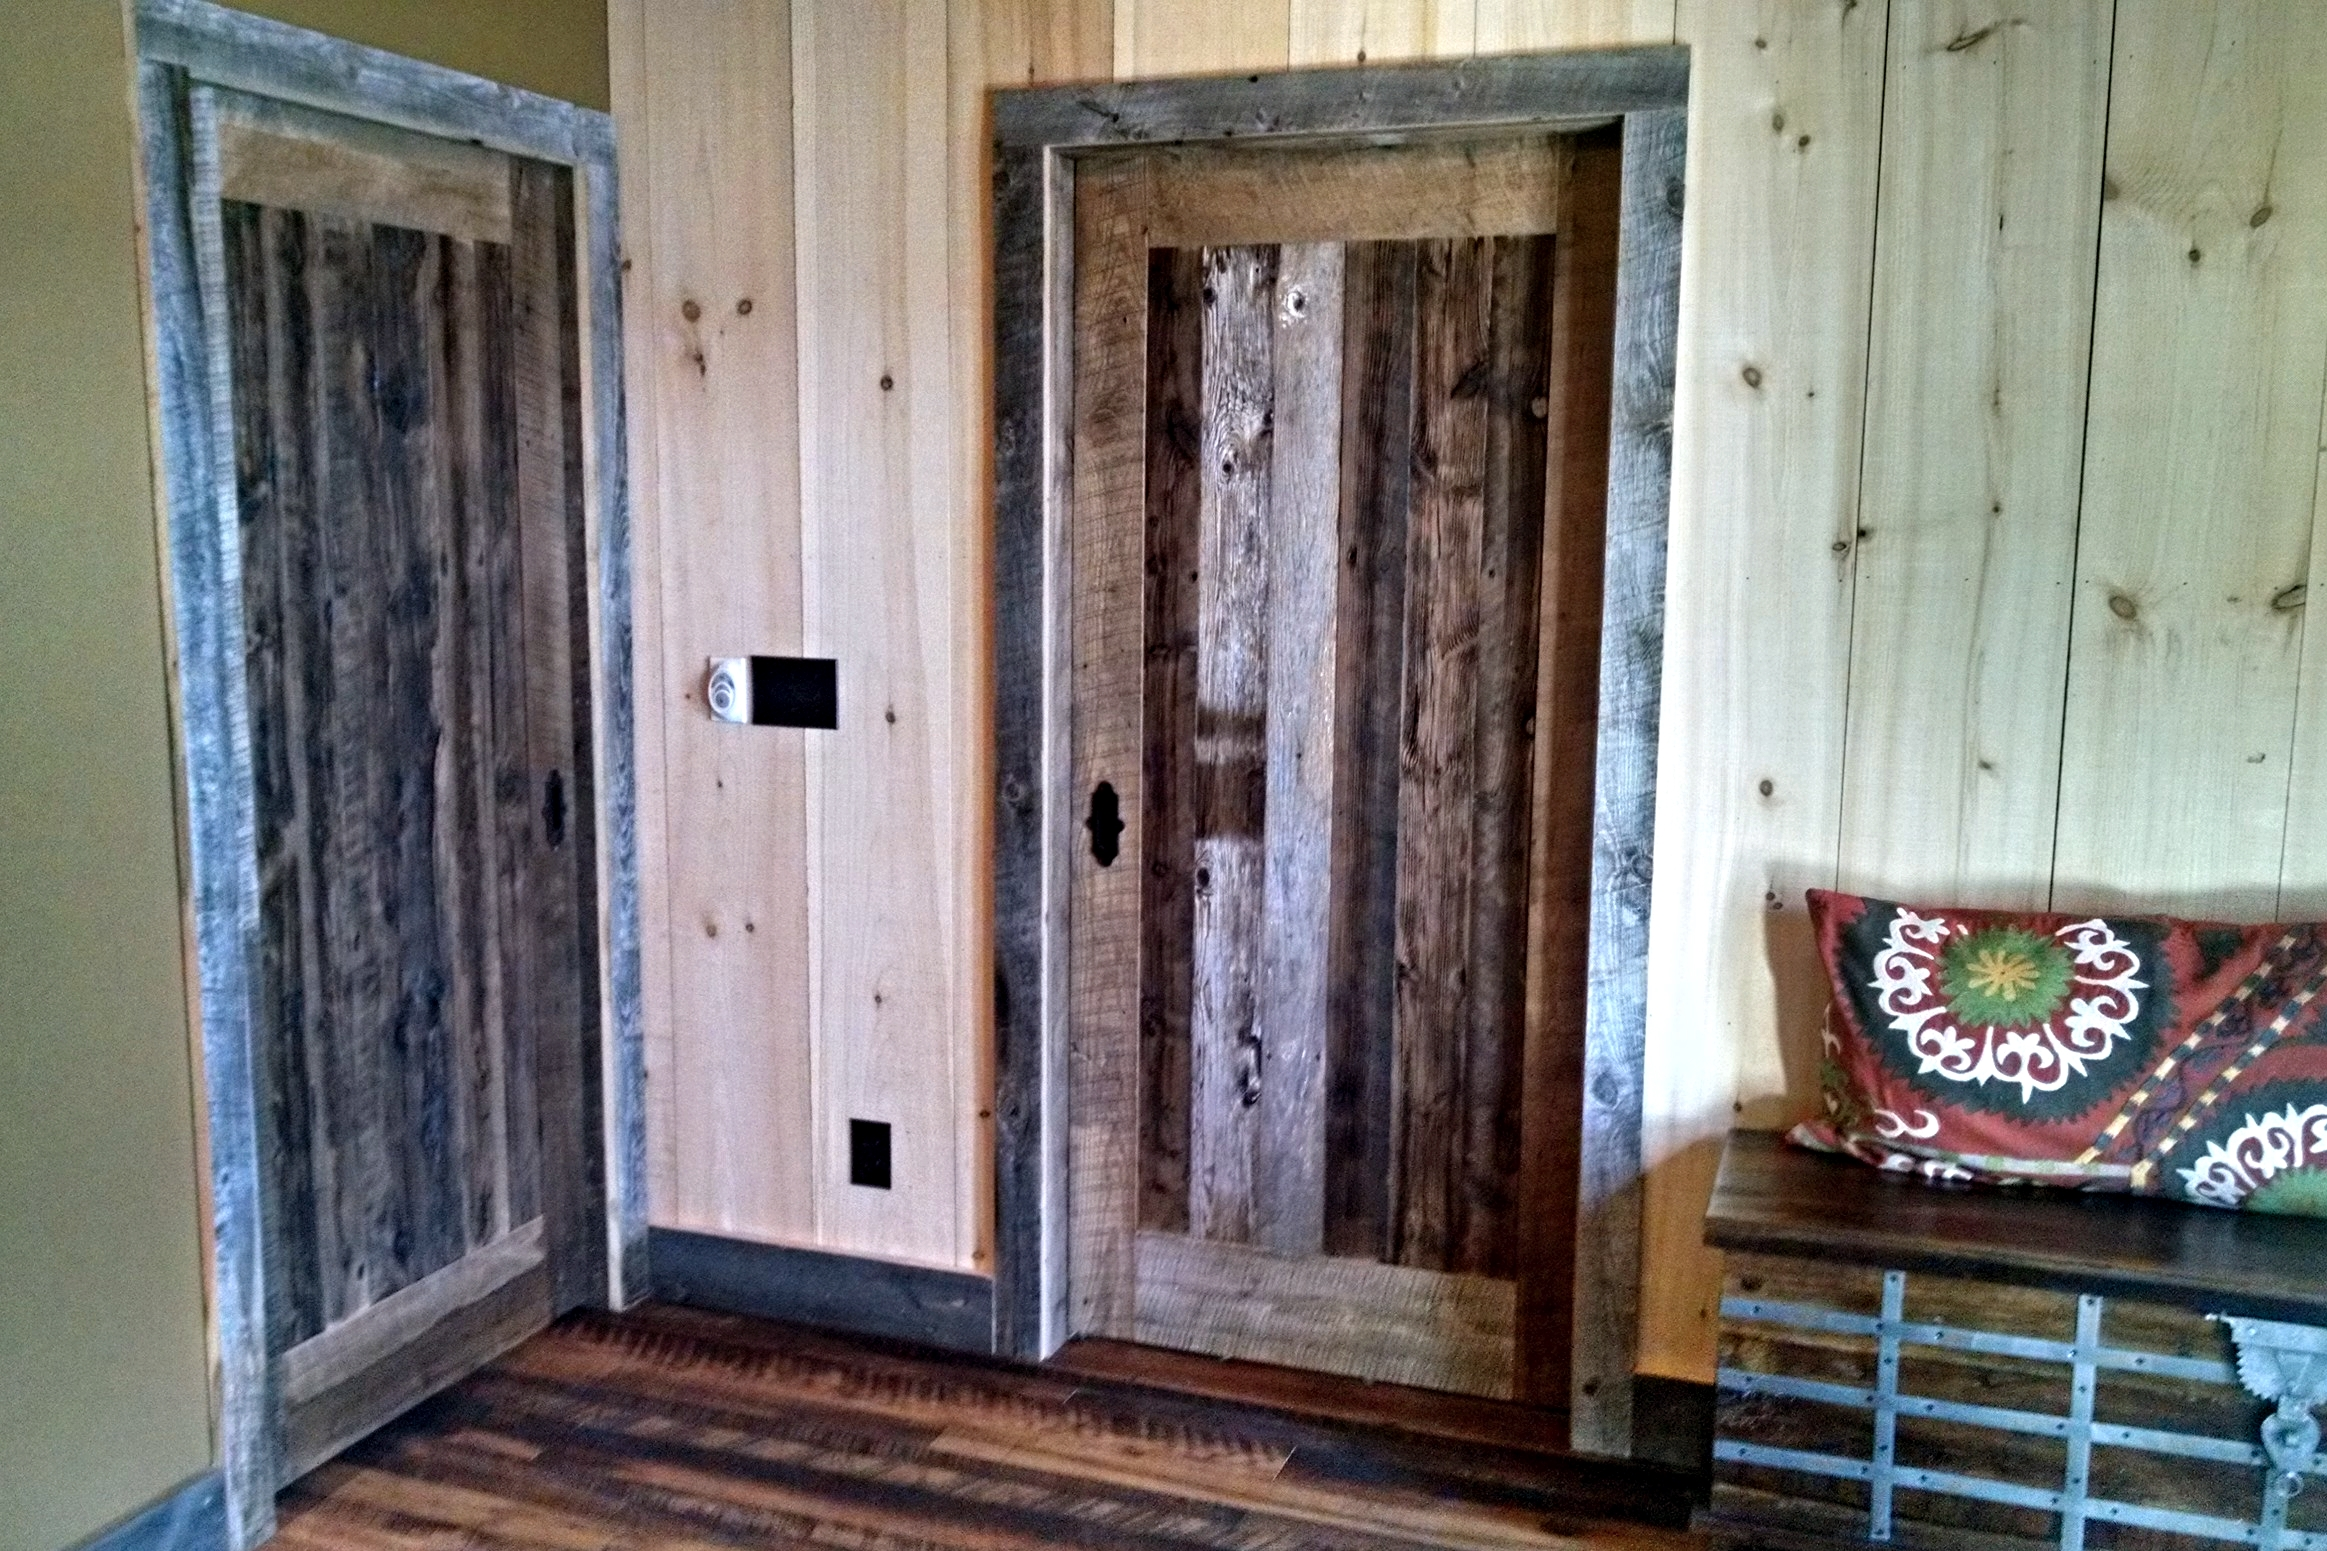 Old barn siding has stood up to the worst of weather for near a century, so not only has the surface layer developed a wonderful patina, but it also protects the wood underneath.